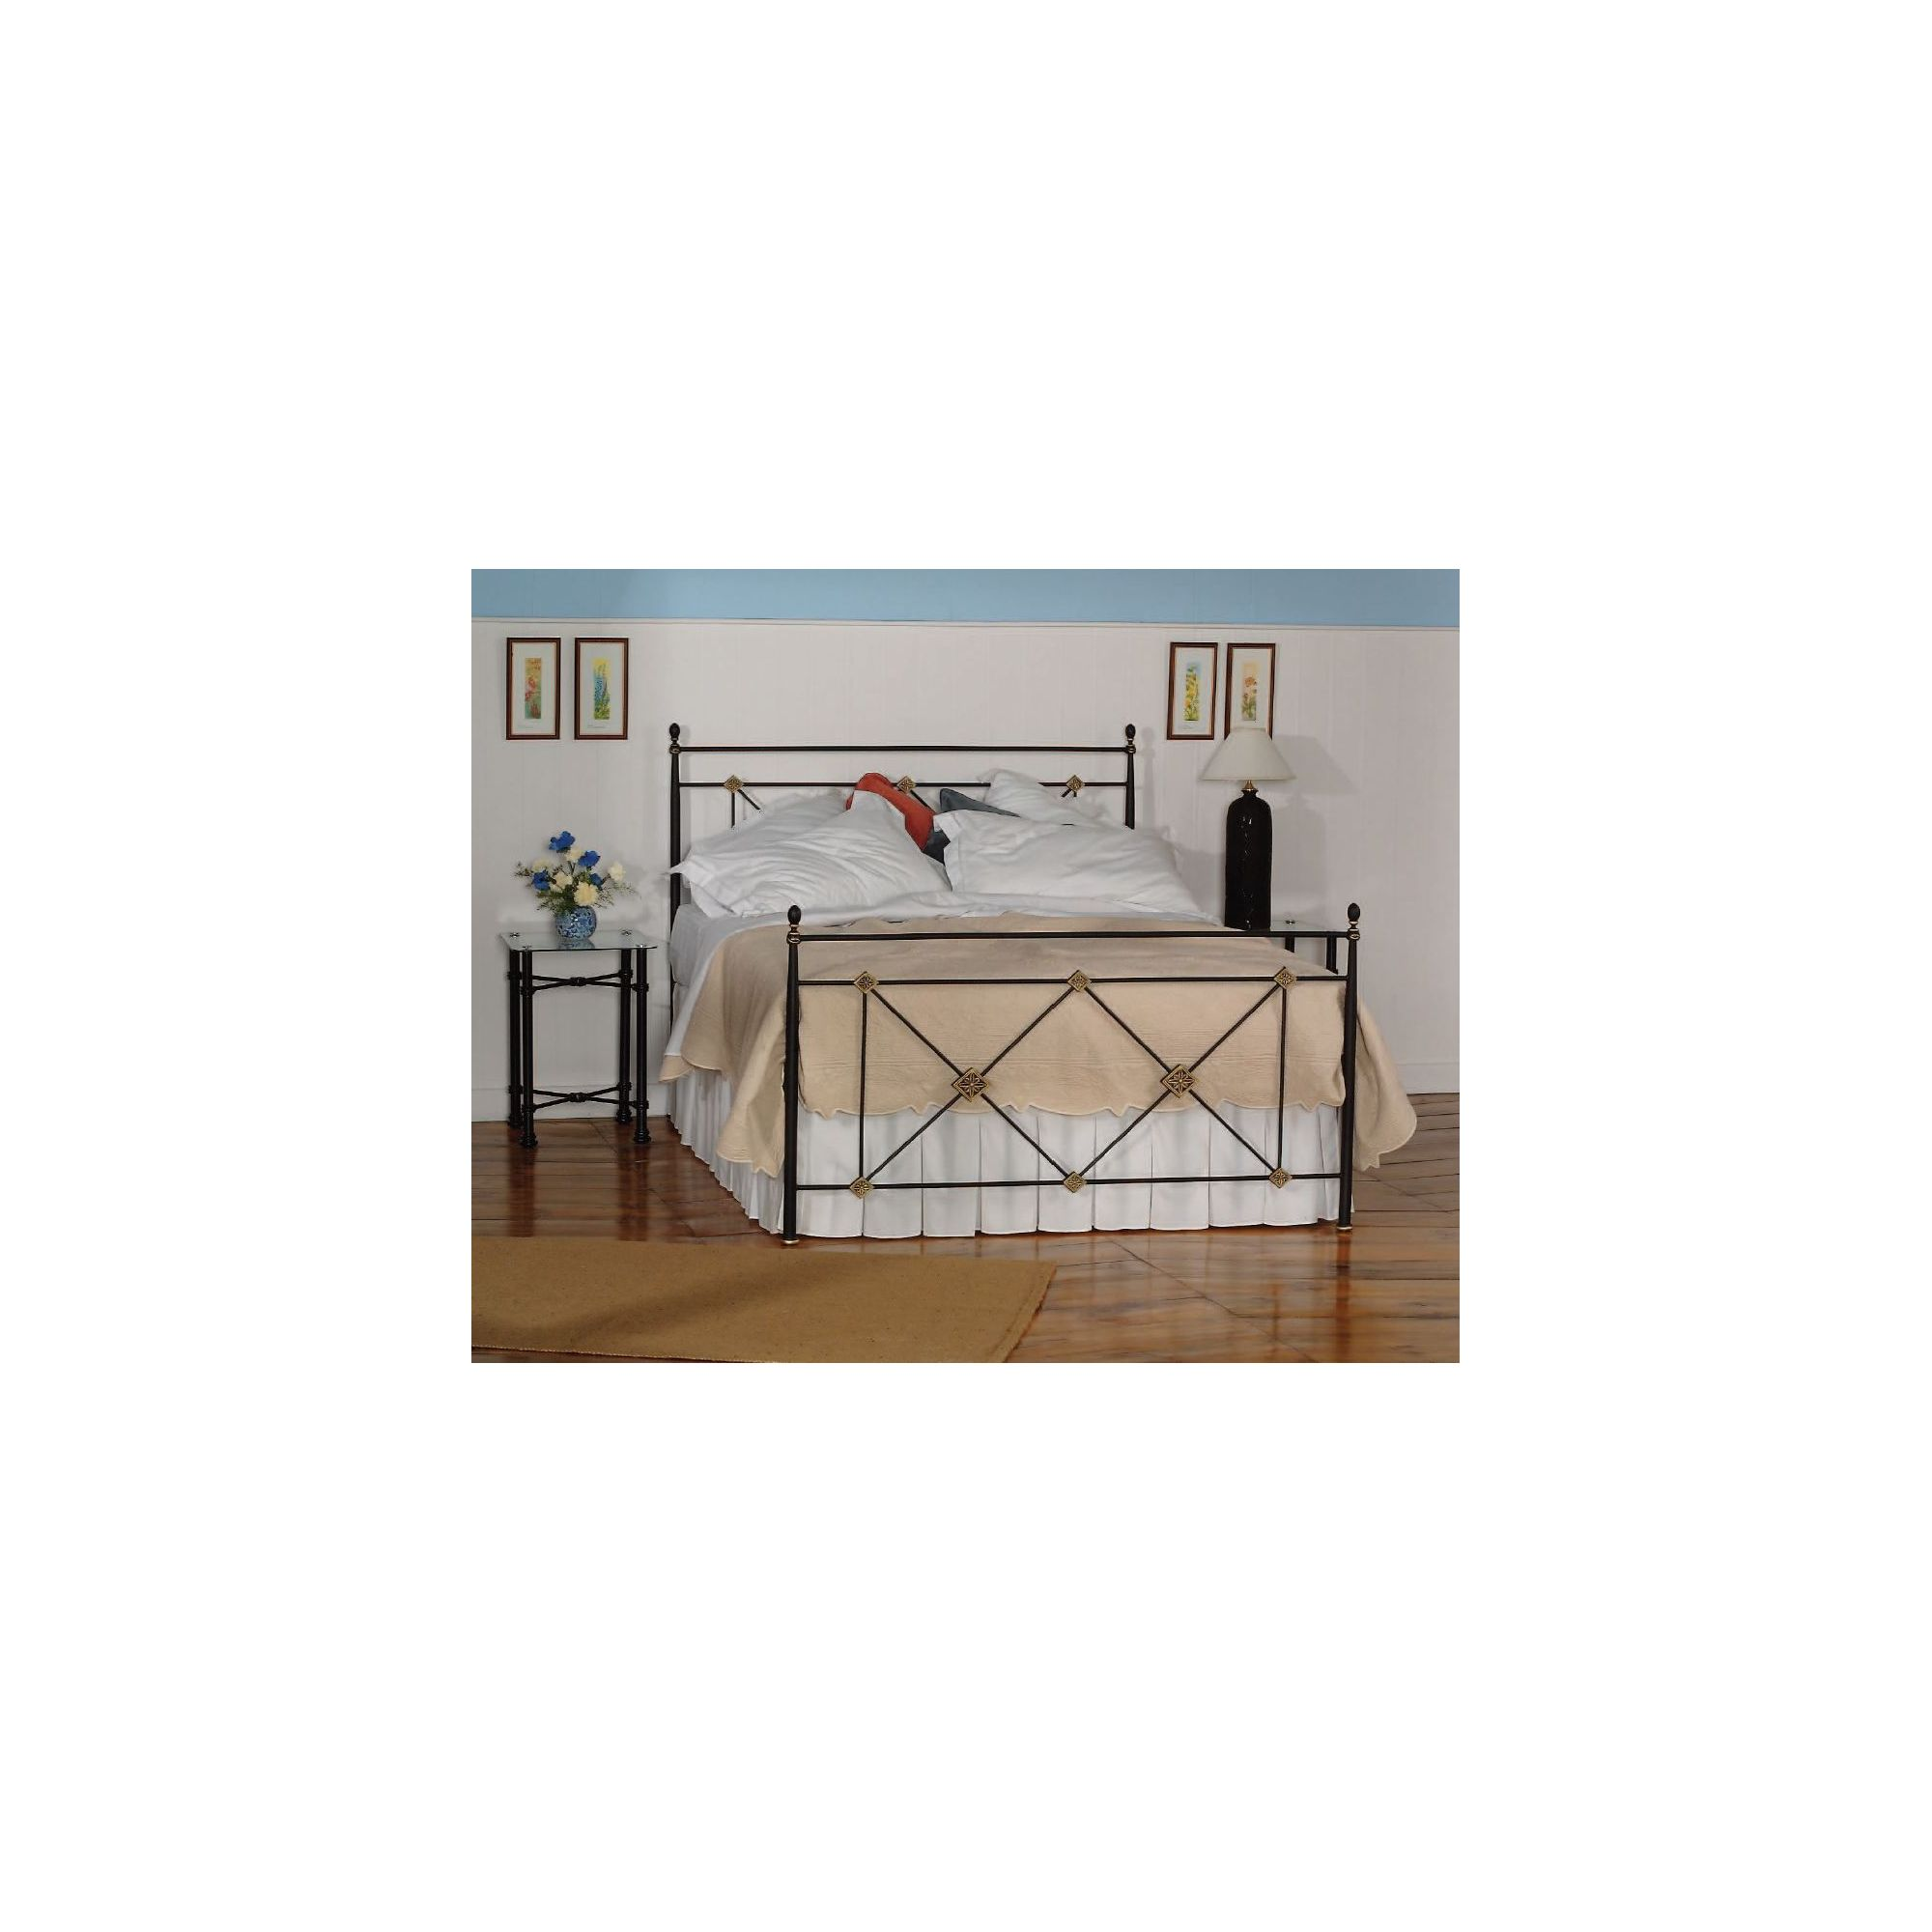 OBC Maine Bed Frame - Double - Glossy Ivory at Tesco Direct